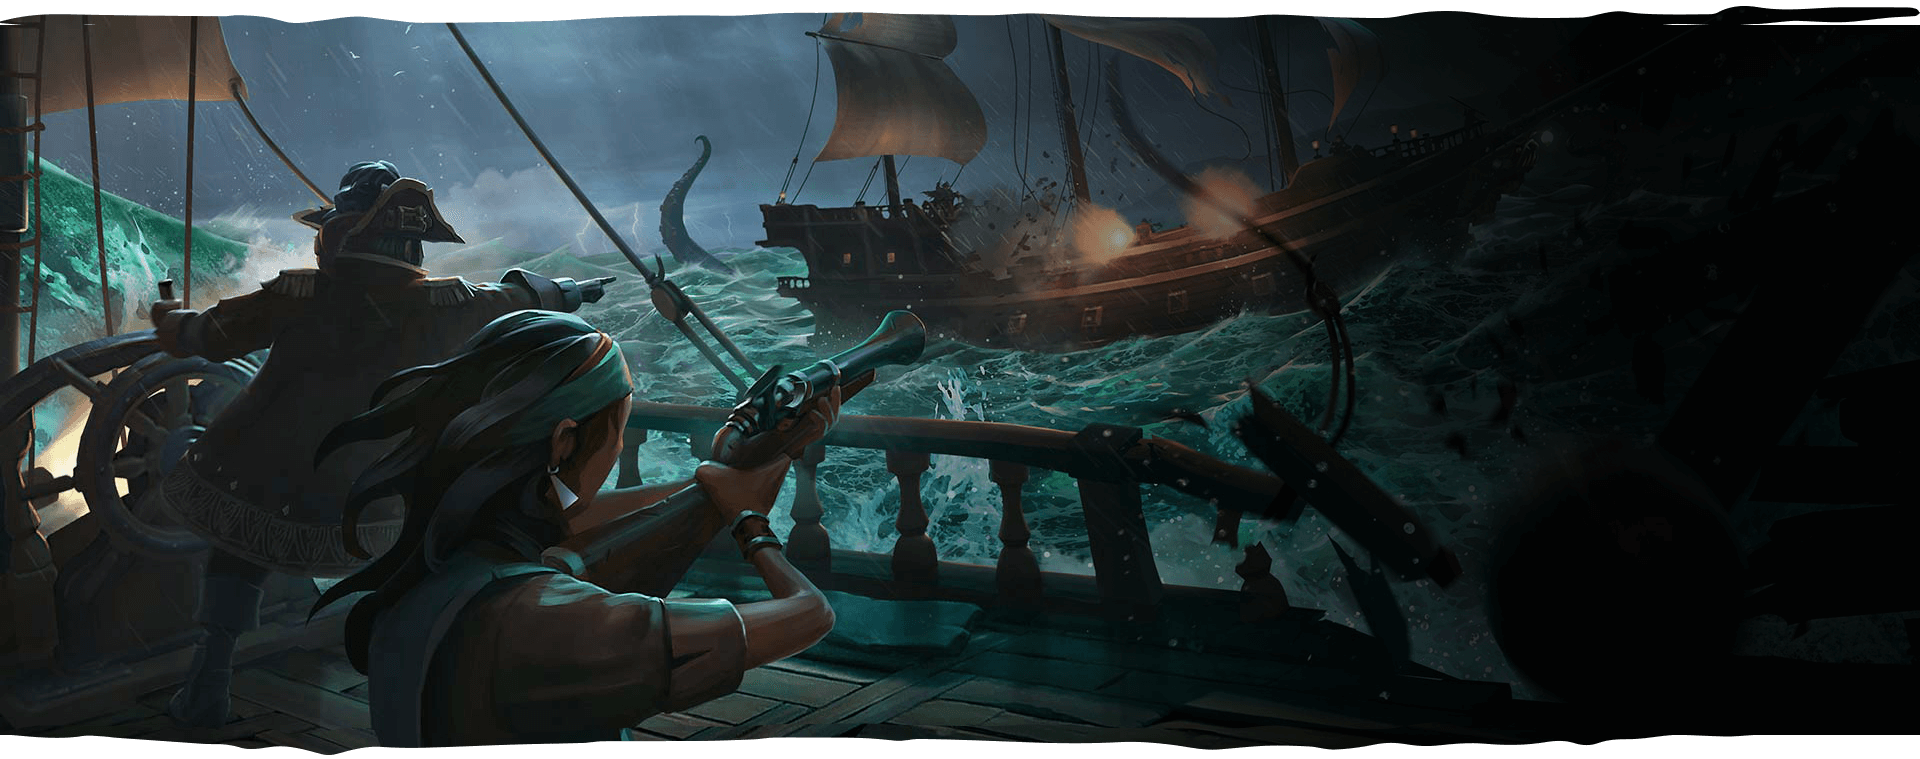 Los piratas de Vesumbri 42bfdb03-e2b6-4e28-8a98-b37c00ee93ad.png?n=SoT_Highlight-Feature-1084_Immersive-Action_1920x759_03